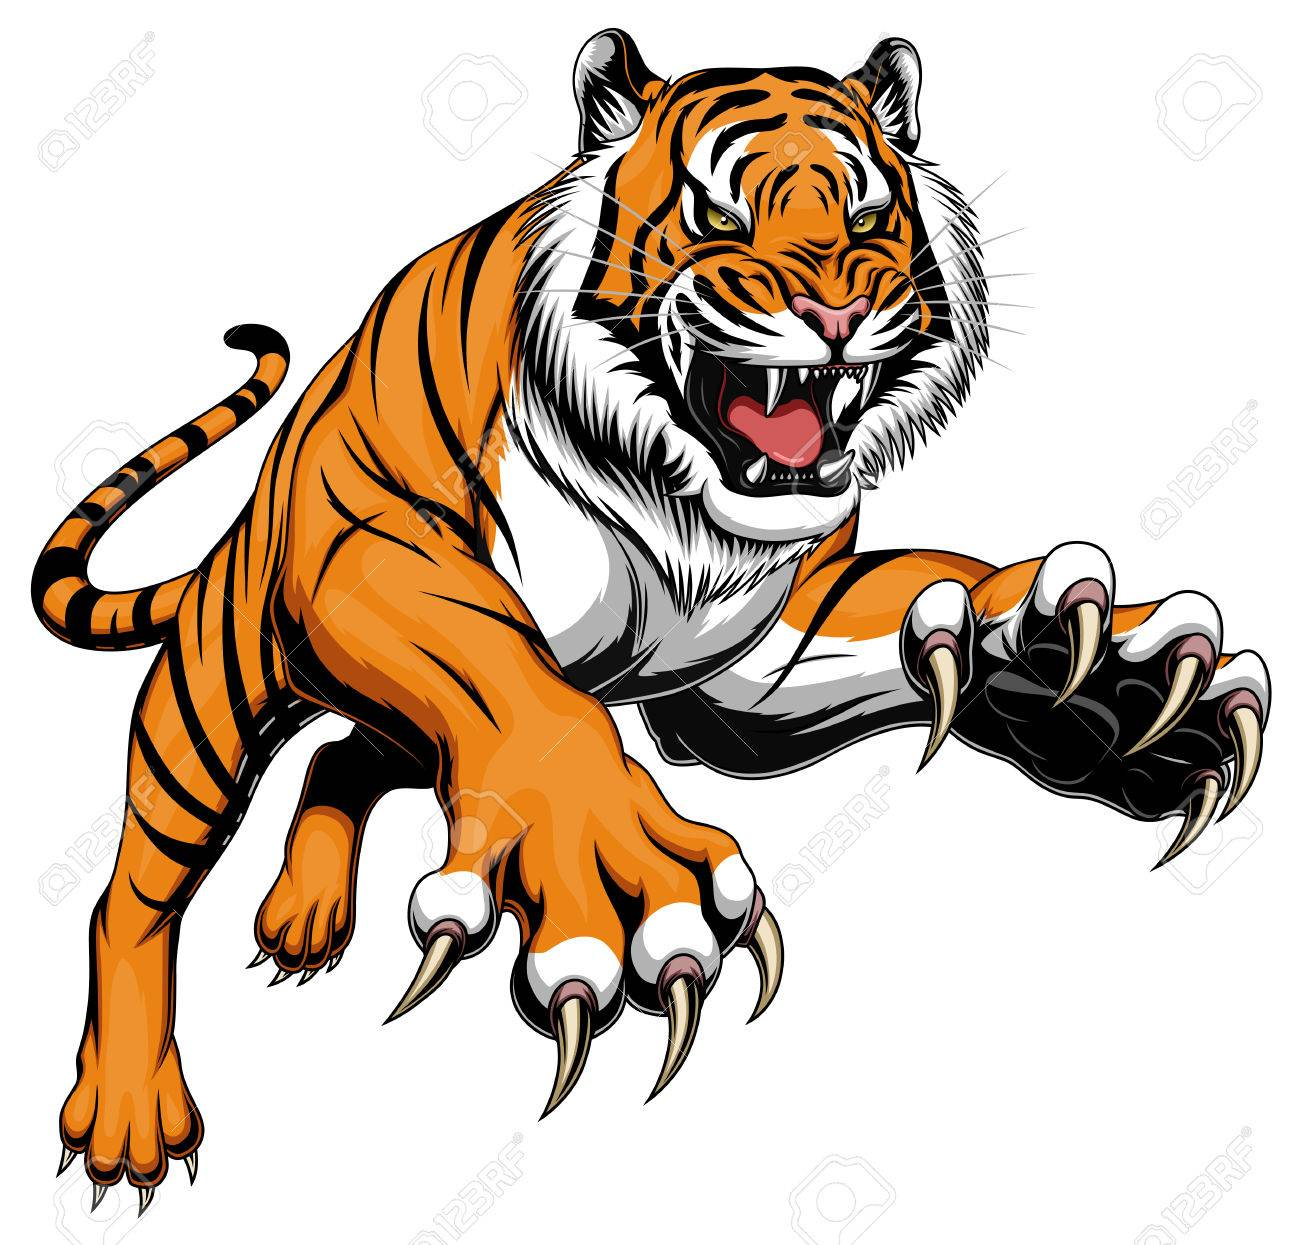 Leaping tiger - 80110141